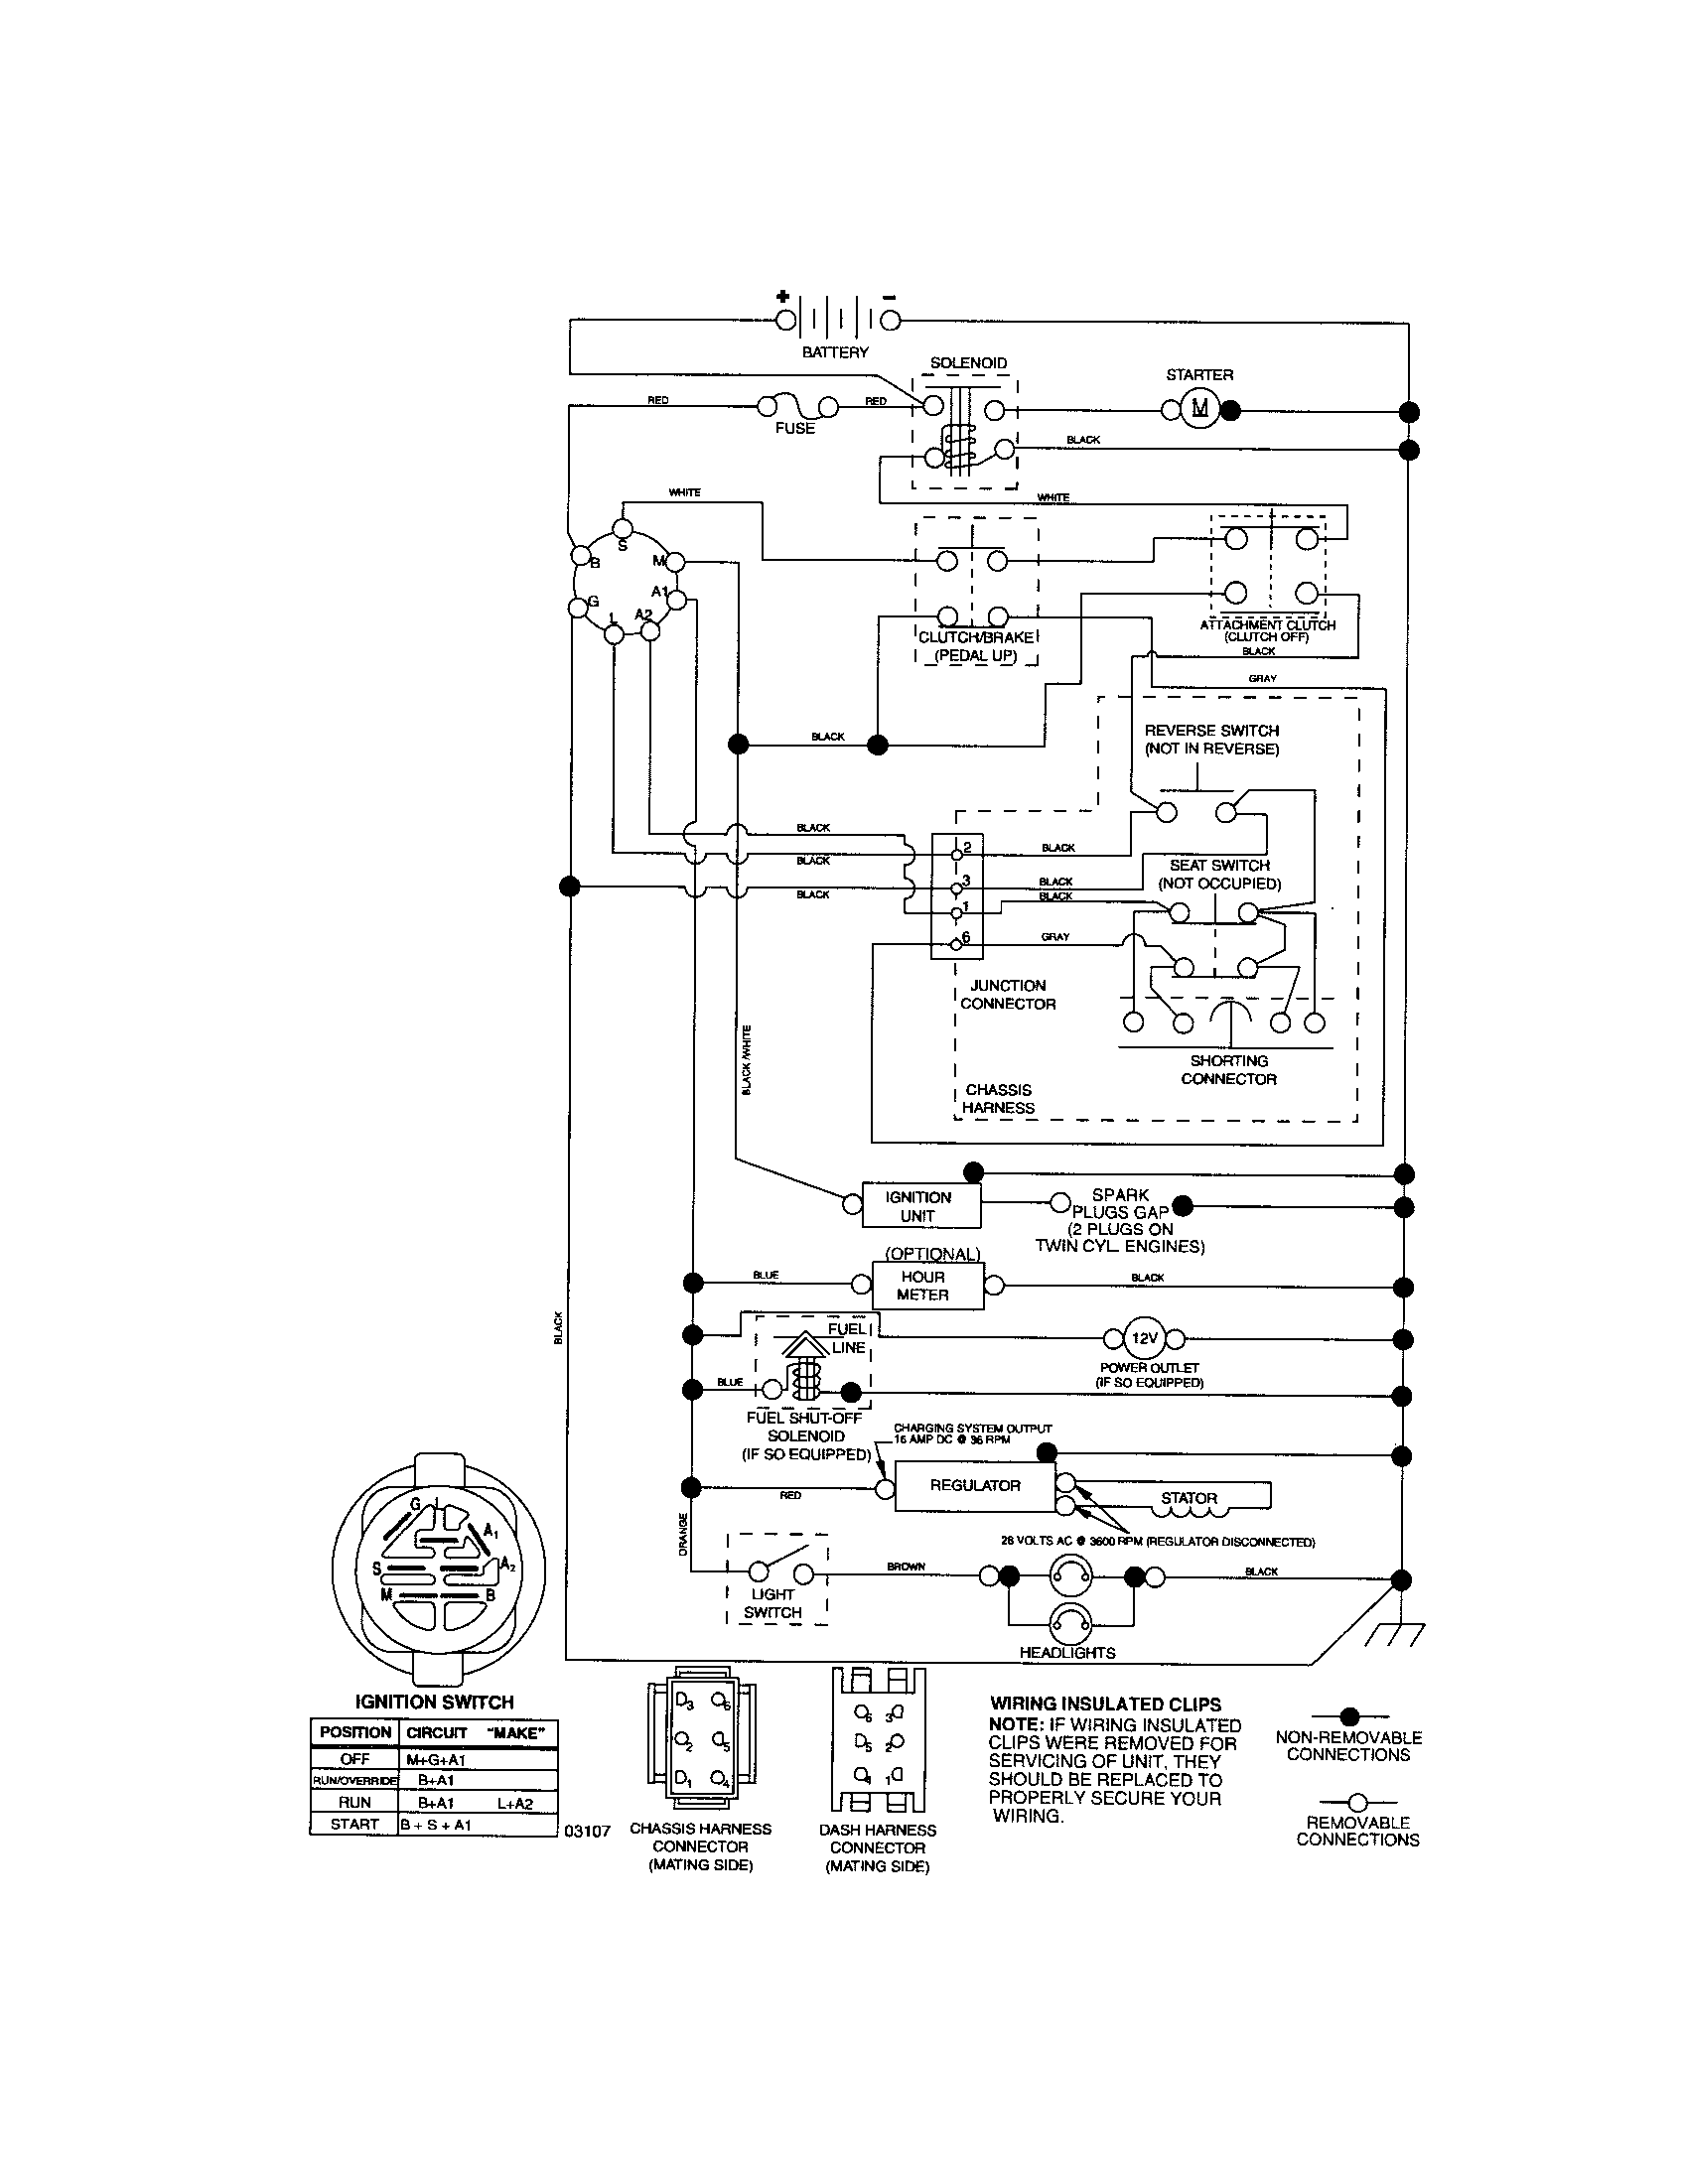 6af5f1447fd13c8443376822ddc1e105 craftsman riding mower electrical diagram wiring diagram husqvarna lawn mower wiring diagram at gsmx.co